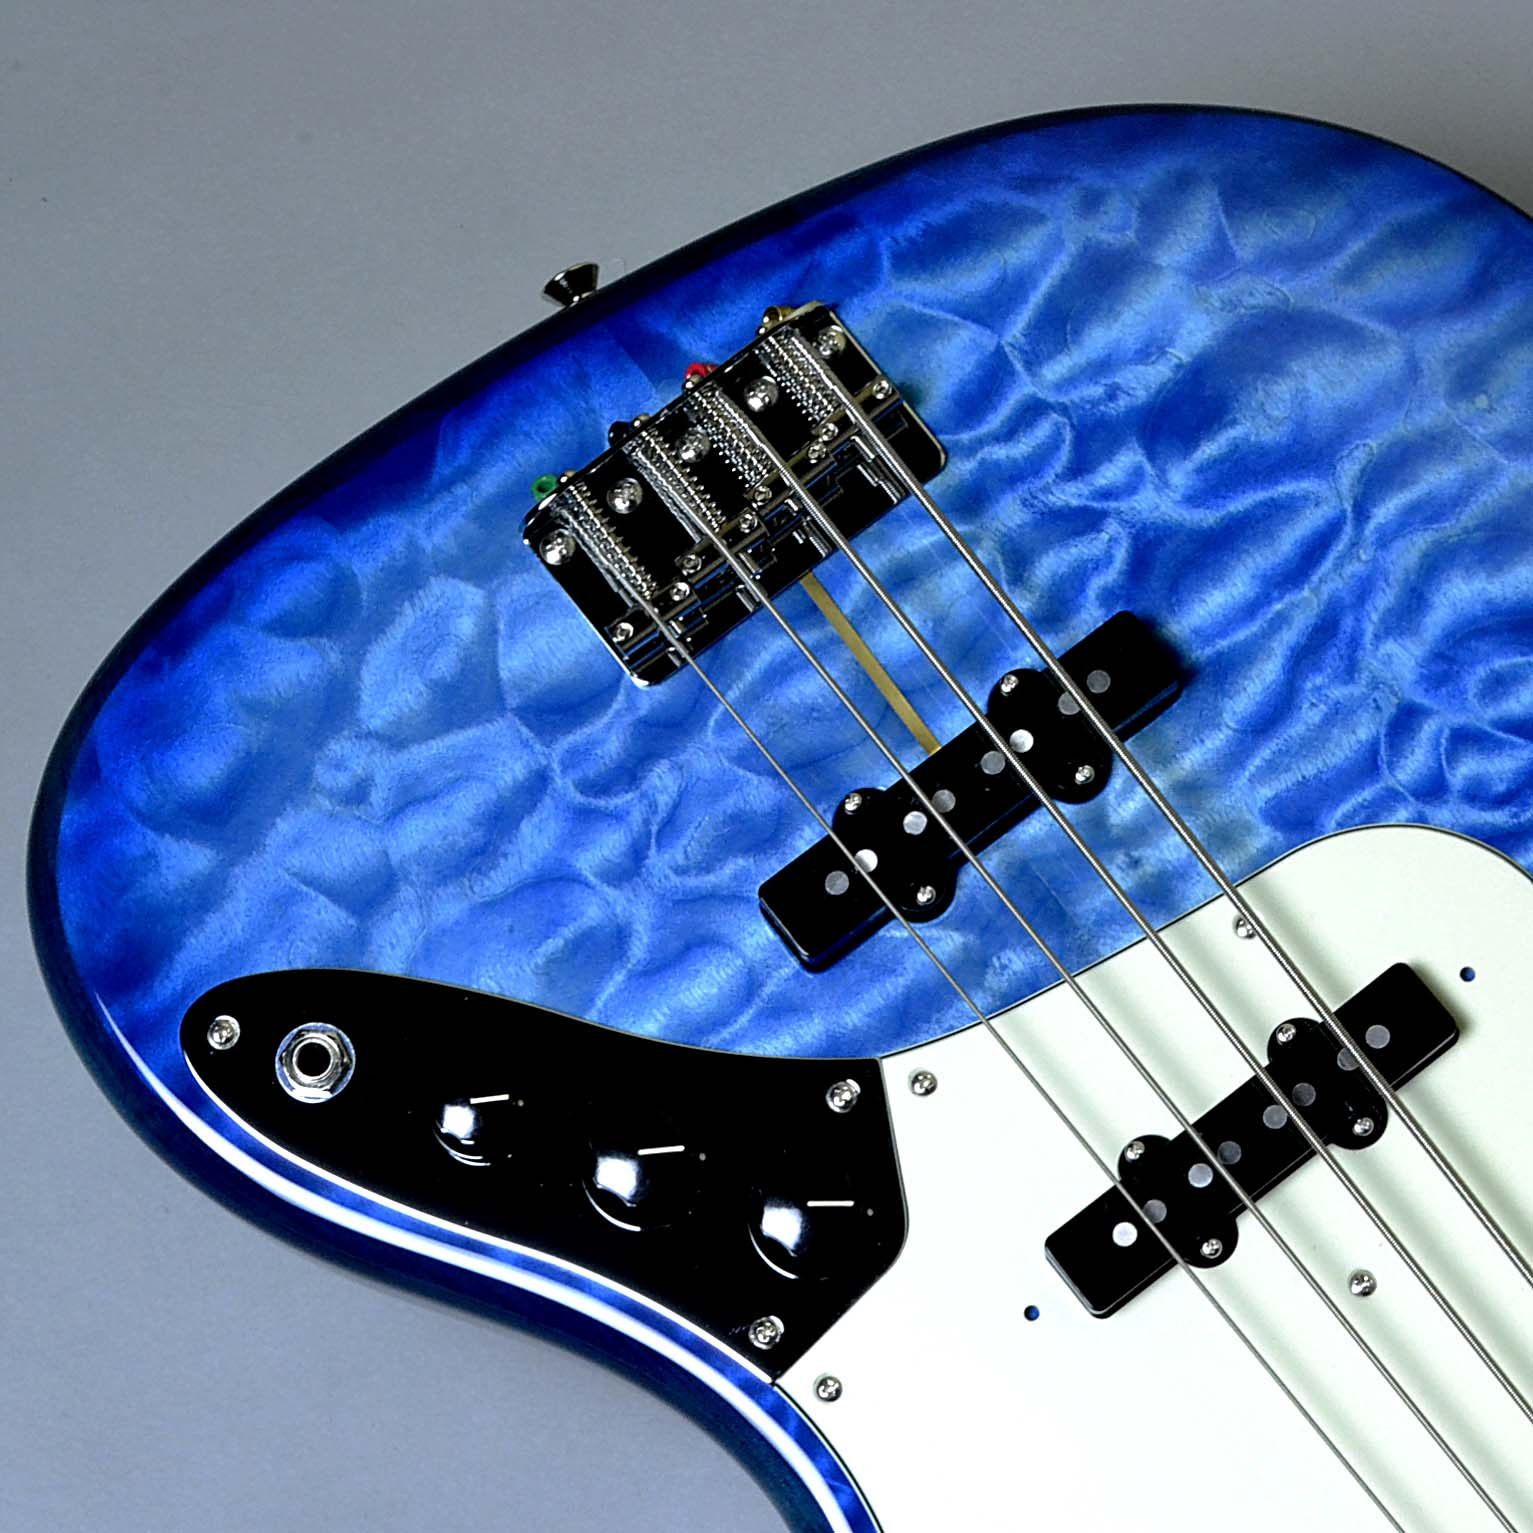 【フェンダー】  Made in Japan Hybrid 60s Jazz Bass Quilt Top Transparent Blue Limited Editionの全体画像(縦)